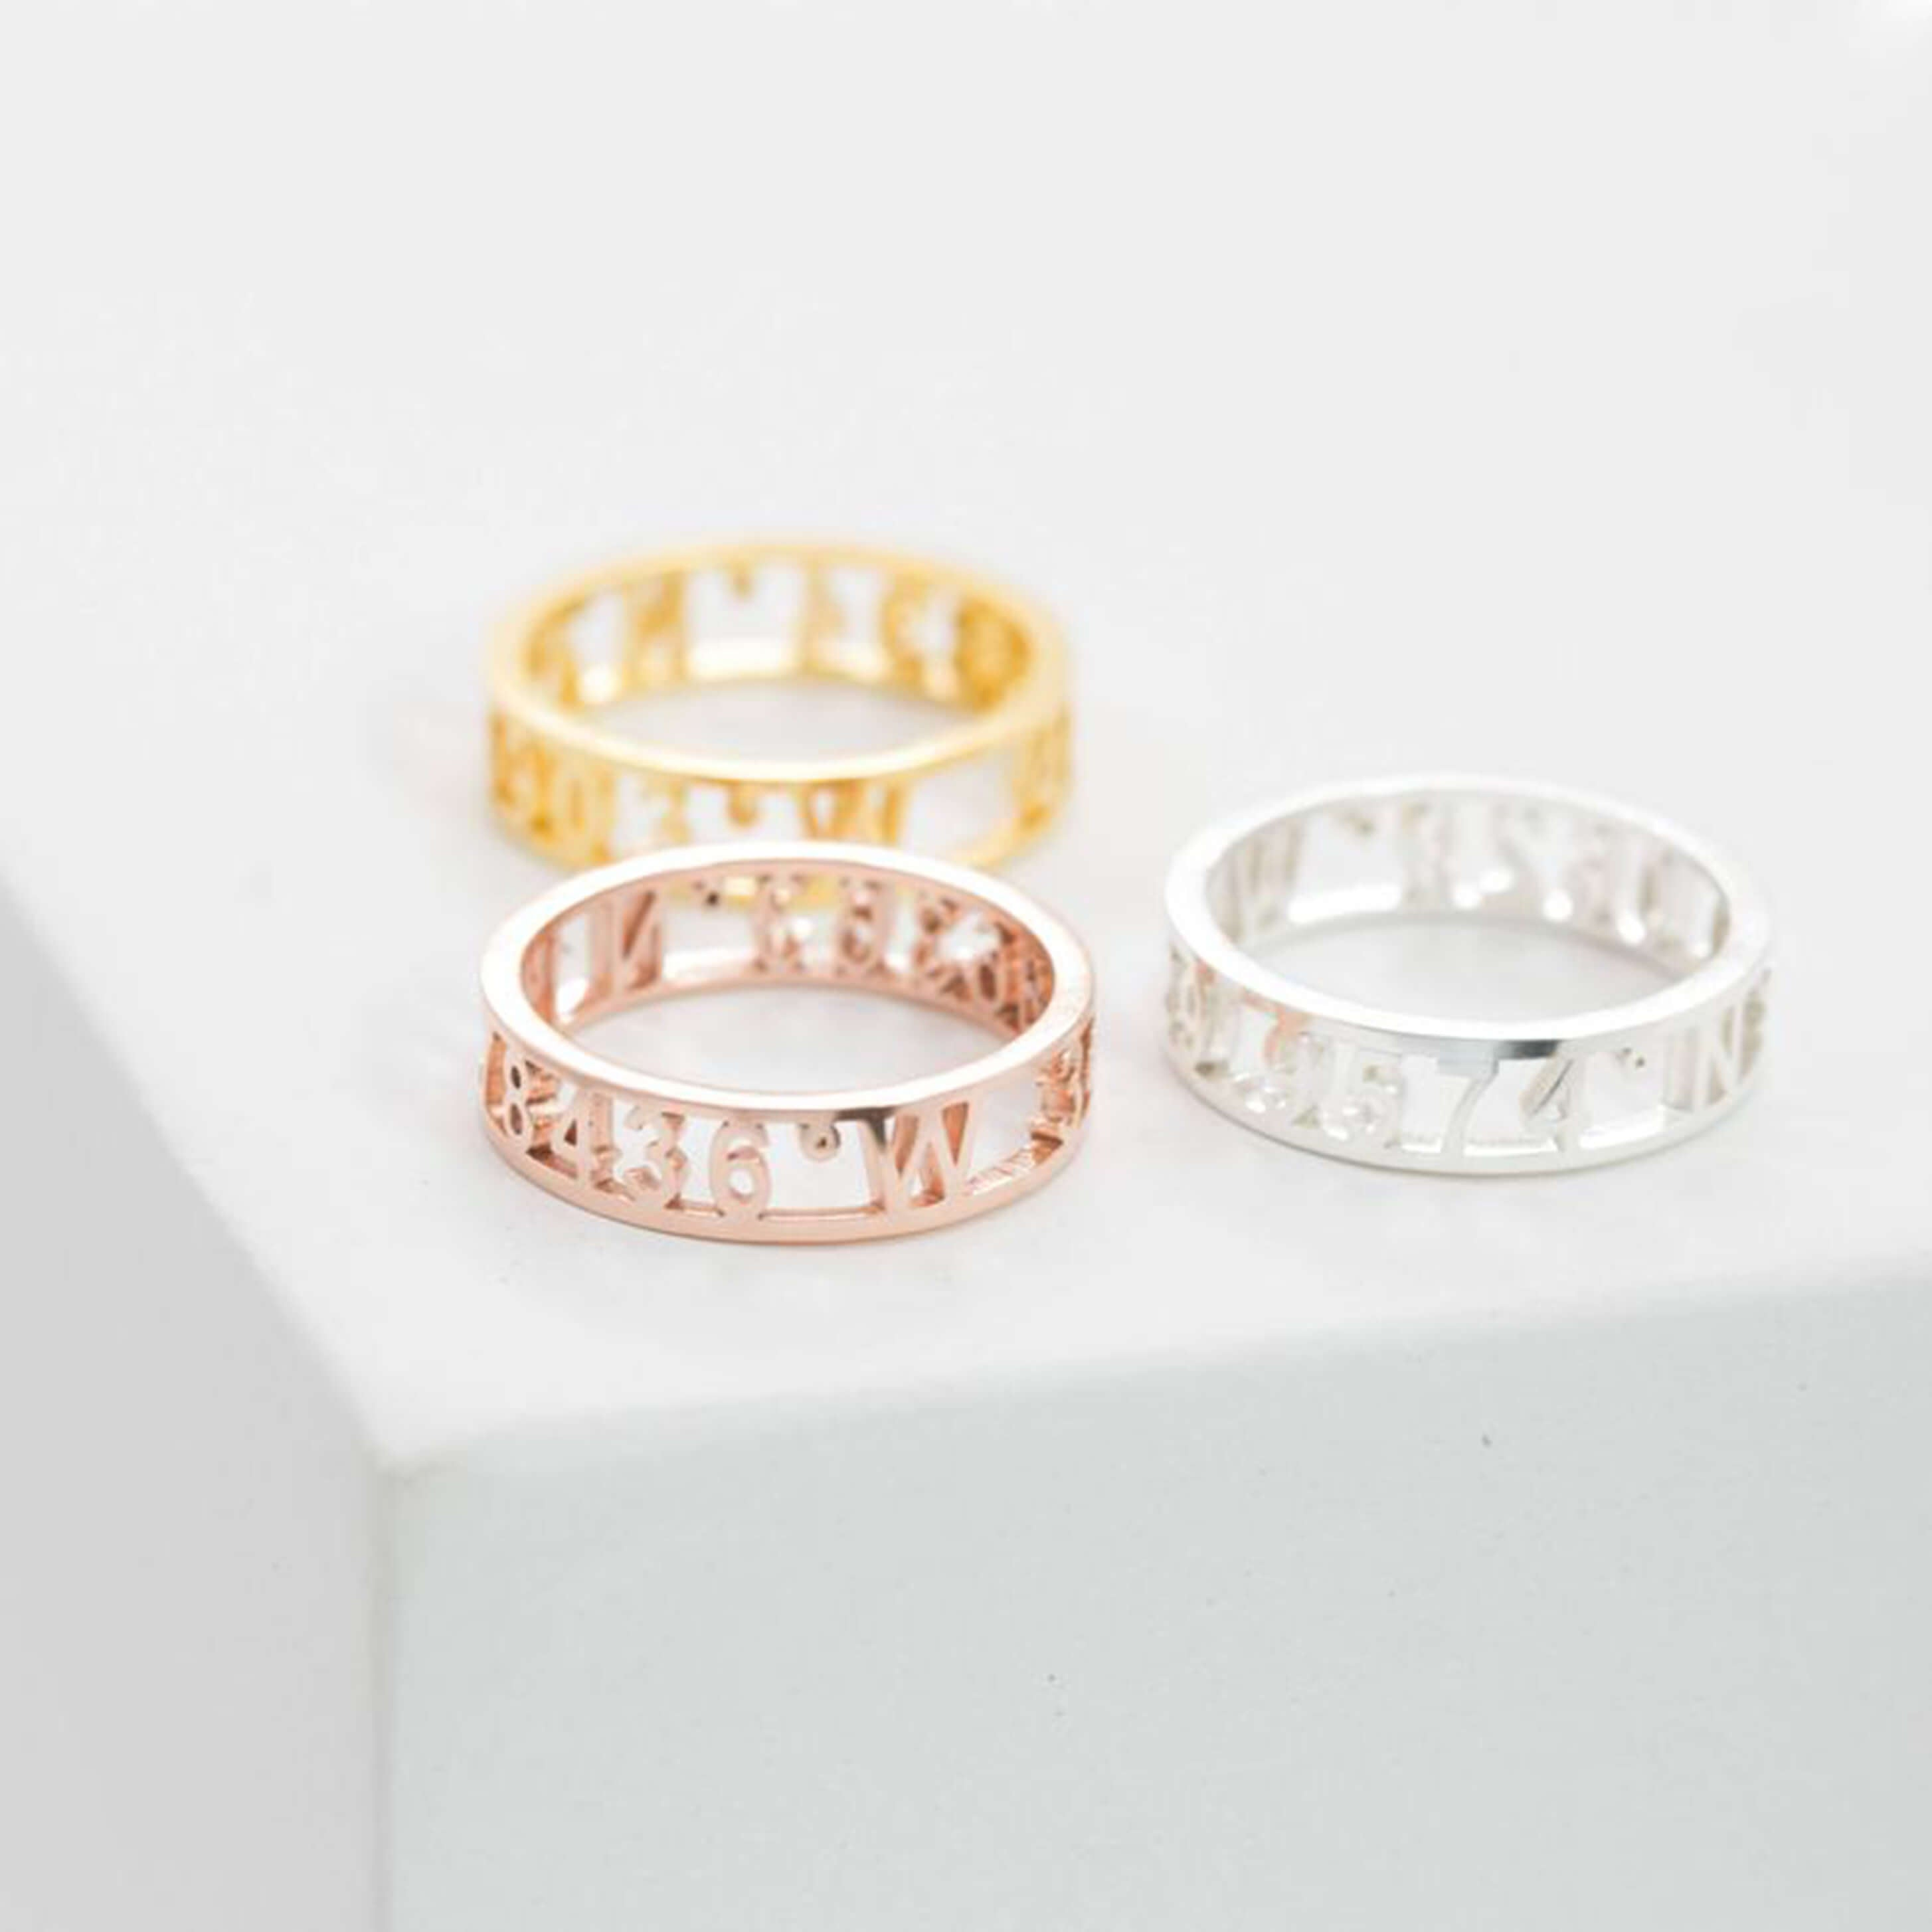 Bridesmaid Gifts Custom Roman Numerals Ring Date Ring Personalize Numeral Ring - urweddinggifts